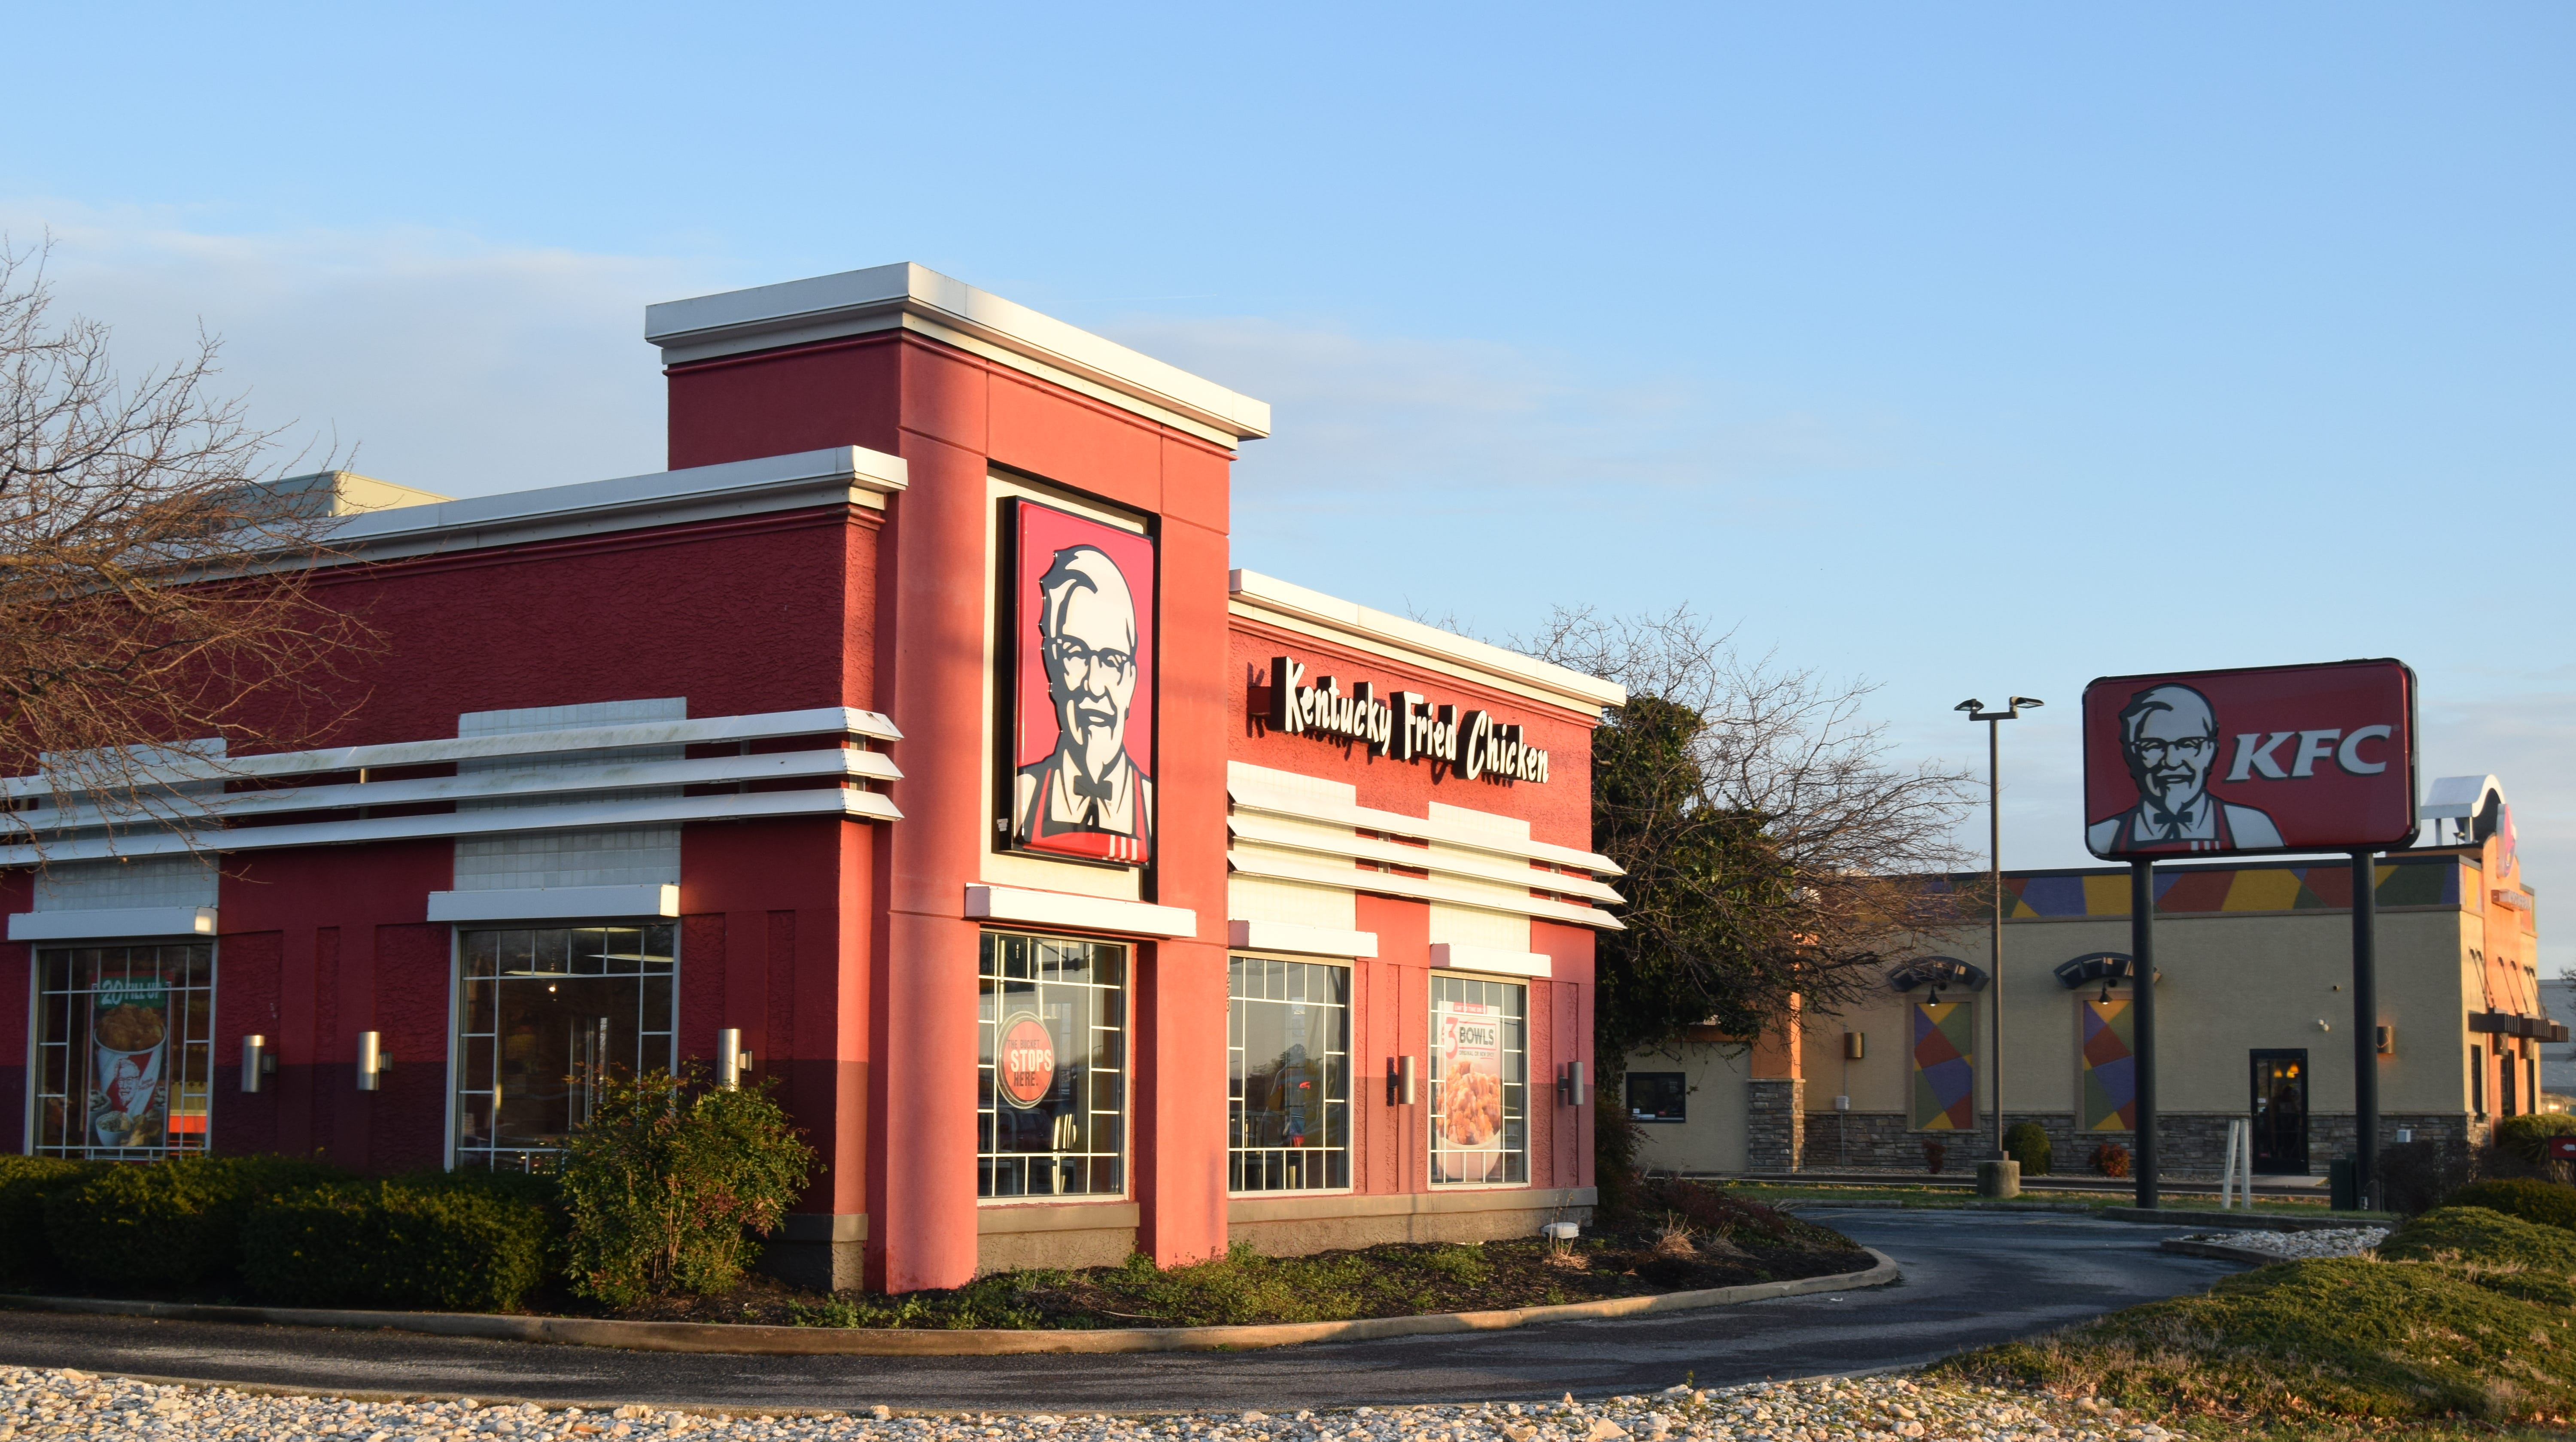 Delaware mom sues KFC franchisee for discrimination, interfering with breastfeeding